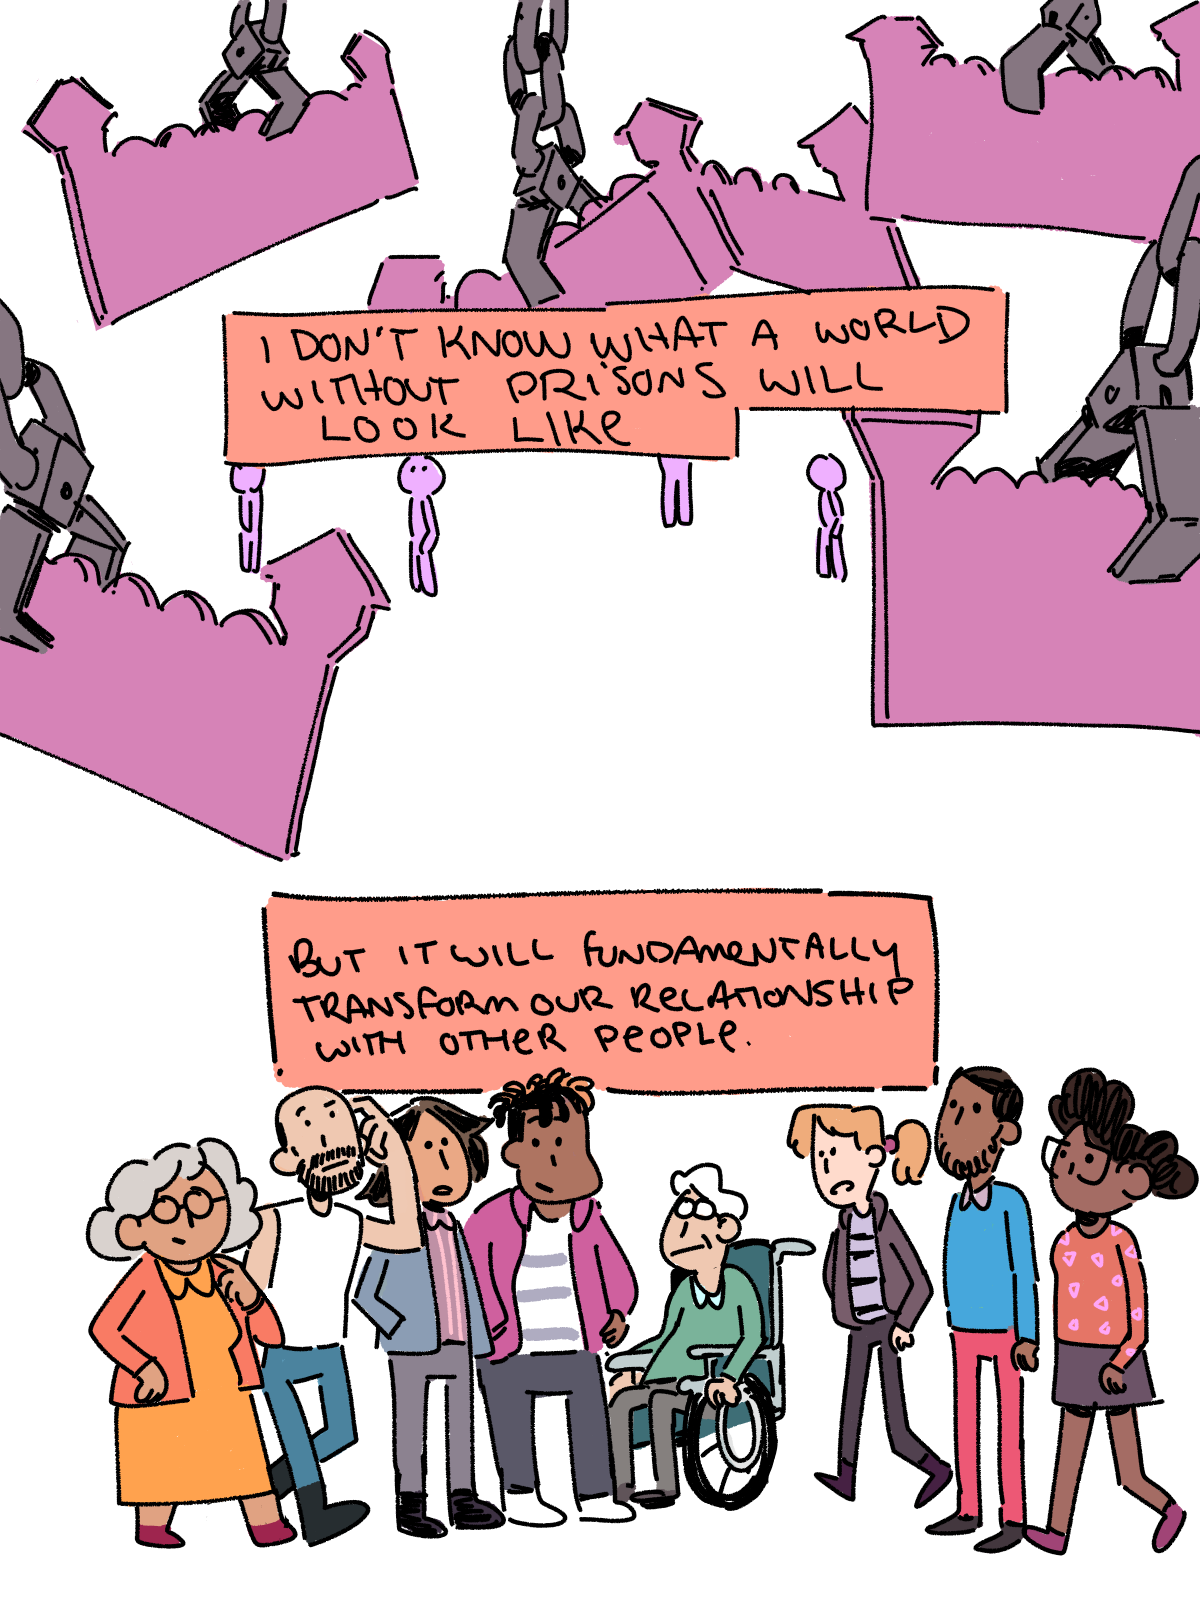 Click the image above for the full comic-article by Flynn Nichols and Mariame Kaba.